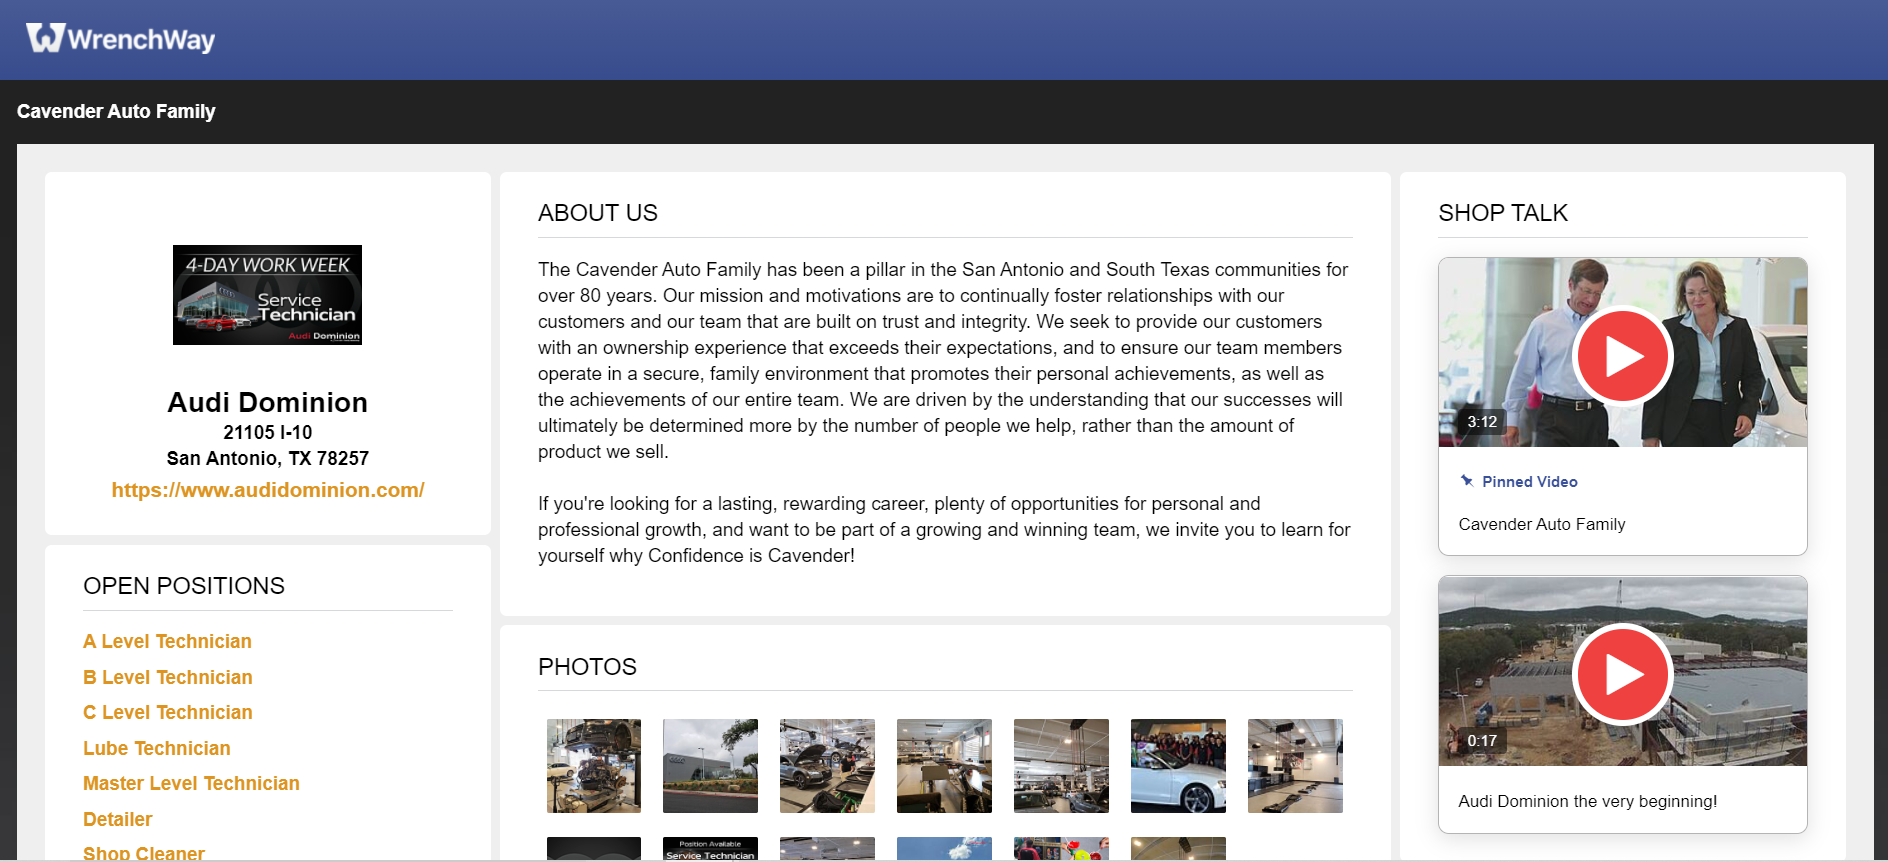 Audi Dominion Top Shop Page on WrenchWay